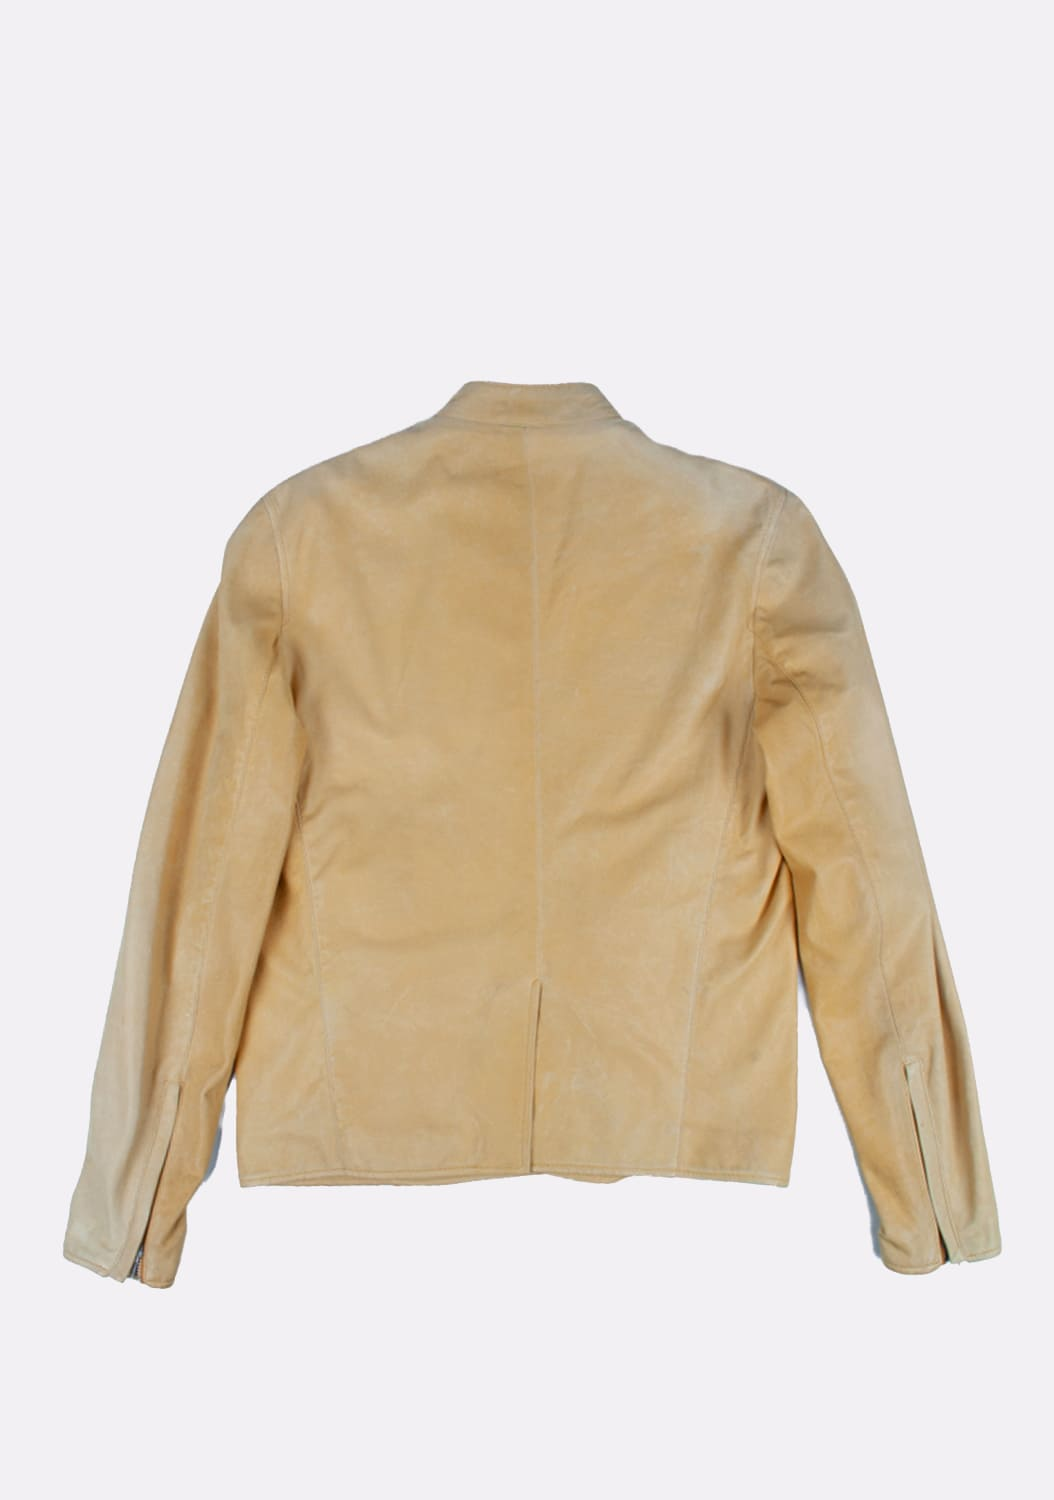 urocklt-Maison-Martin-Margiela-10-Leather-Men-Jacket-Size-48-ITA (4)